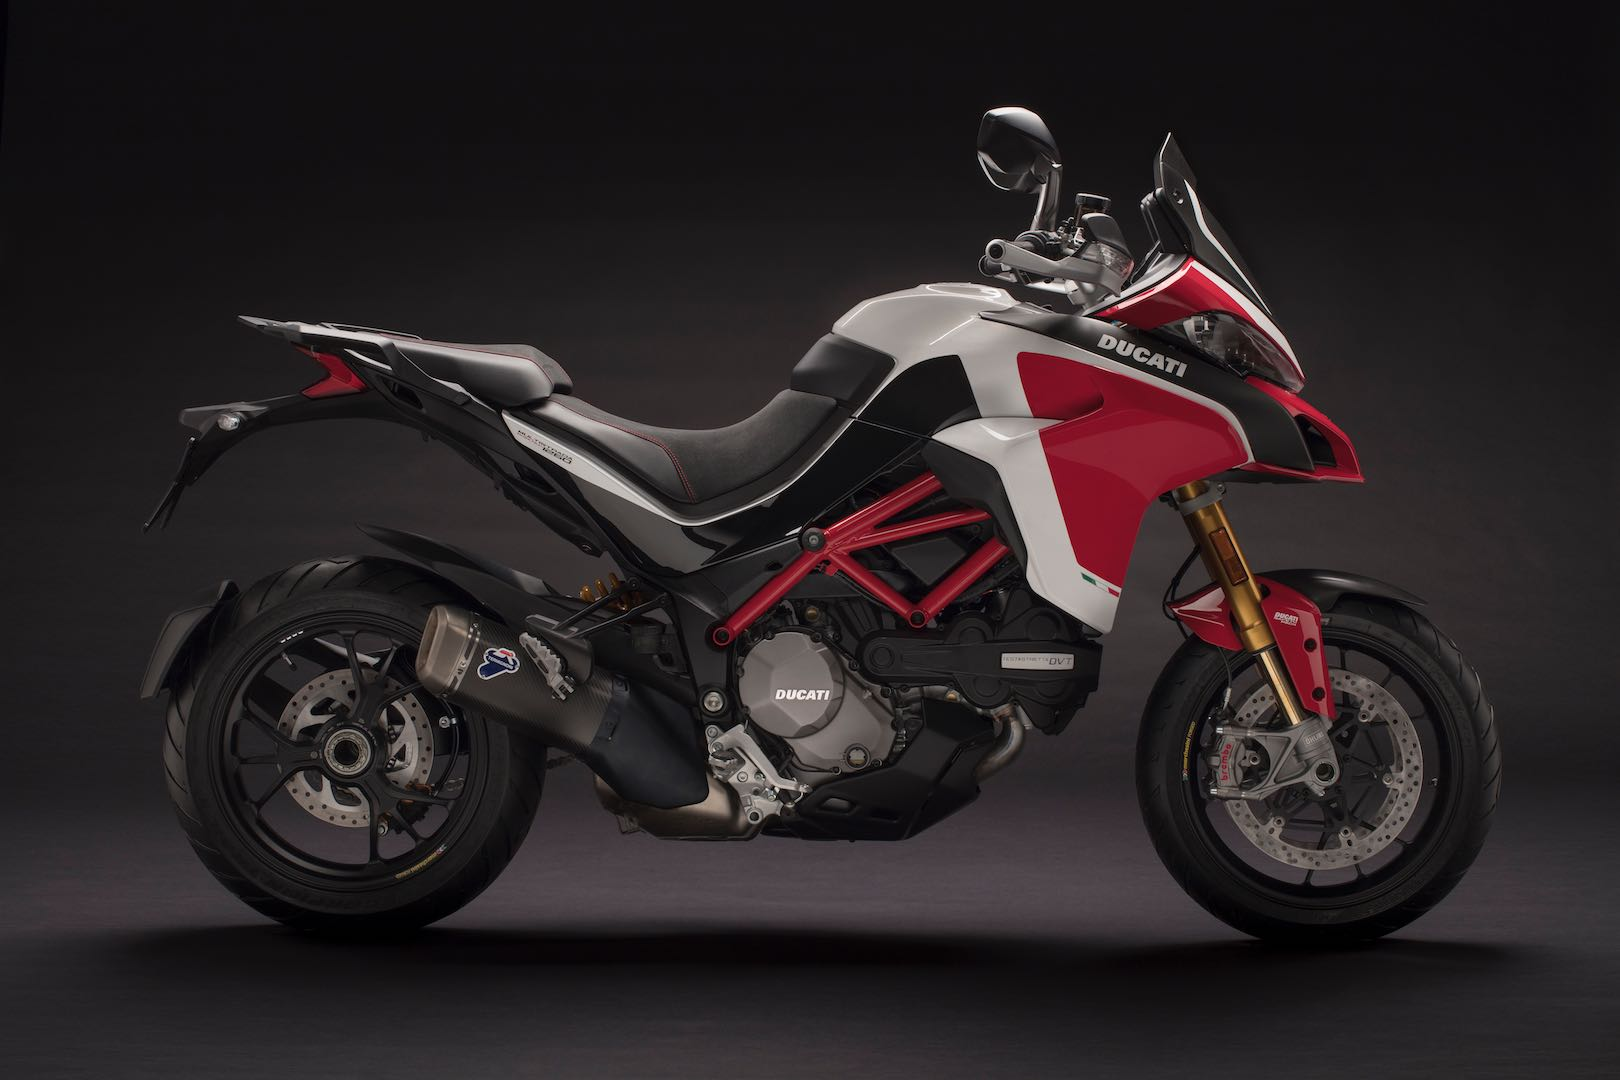 2018 ducati multistrada 1260 first look 13 fast facts video. Black Bedroom Furniture Sets. Home Design Ideas